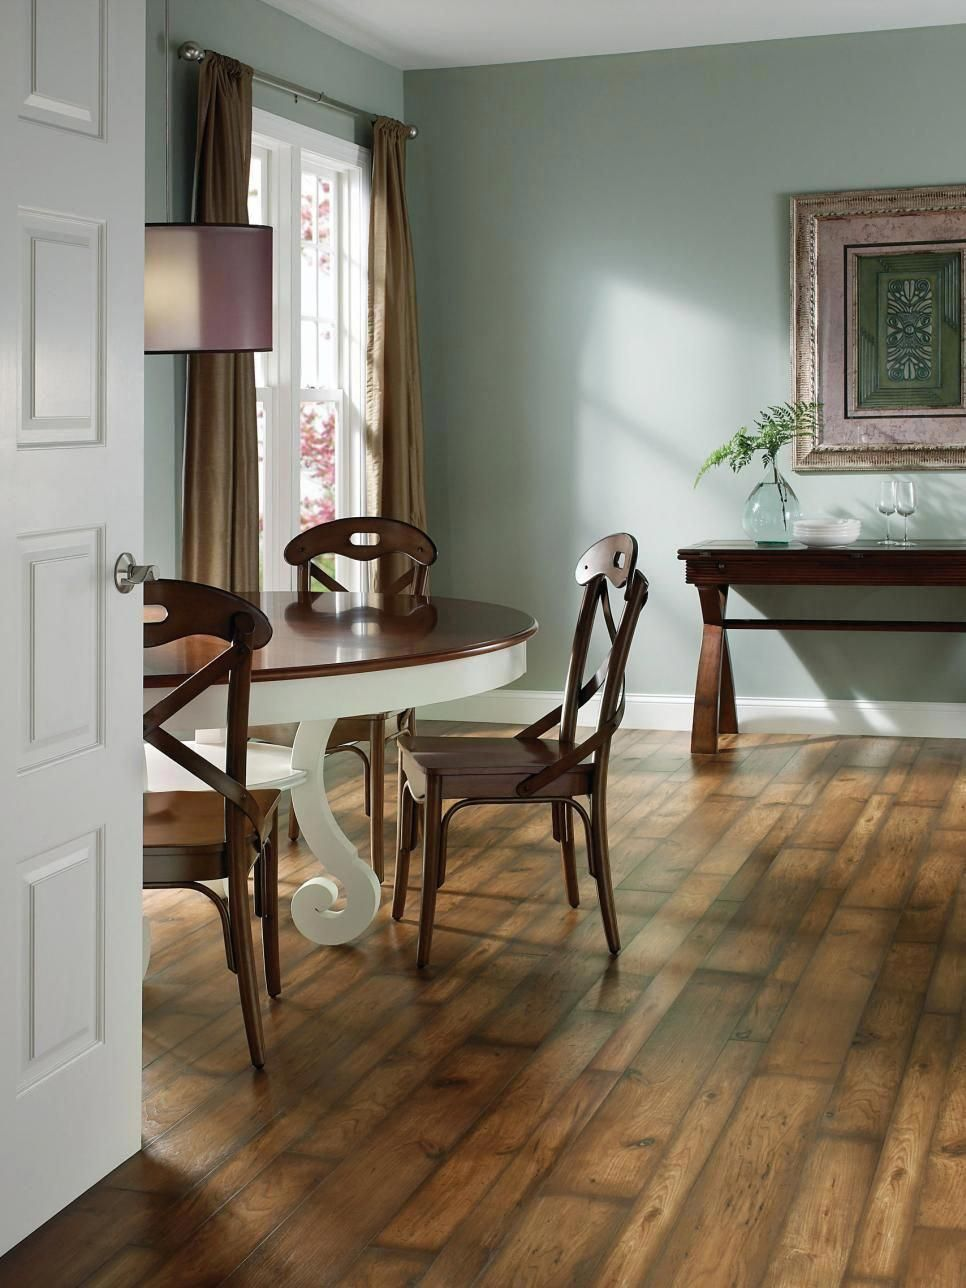 A lowcost option, vinyl floors provide a durable surface